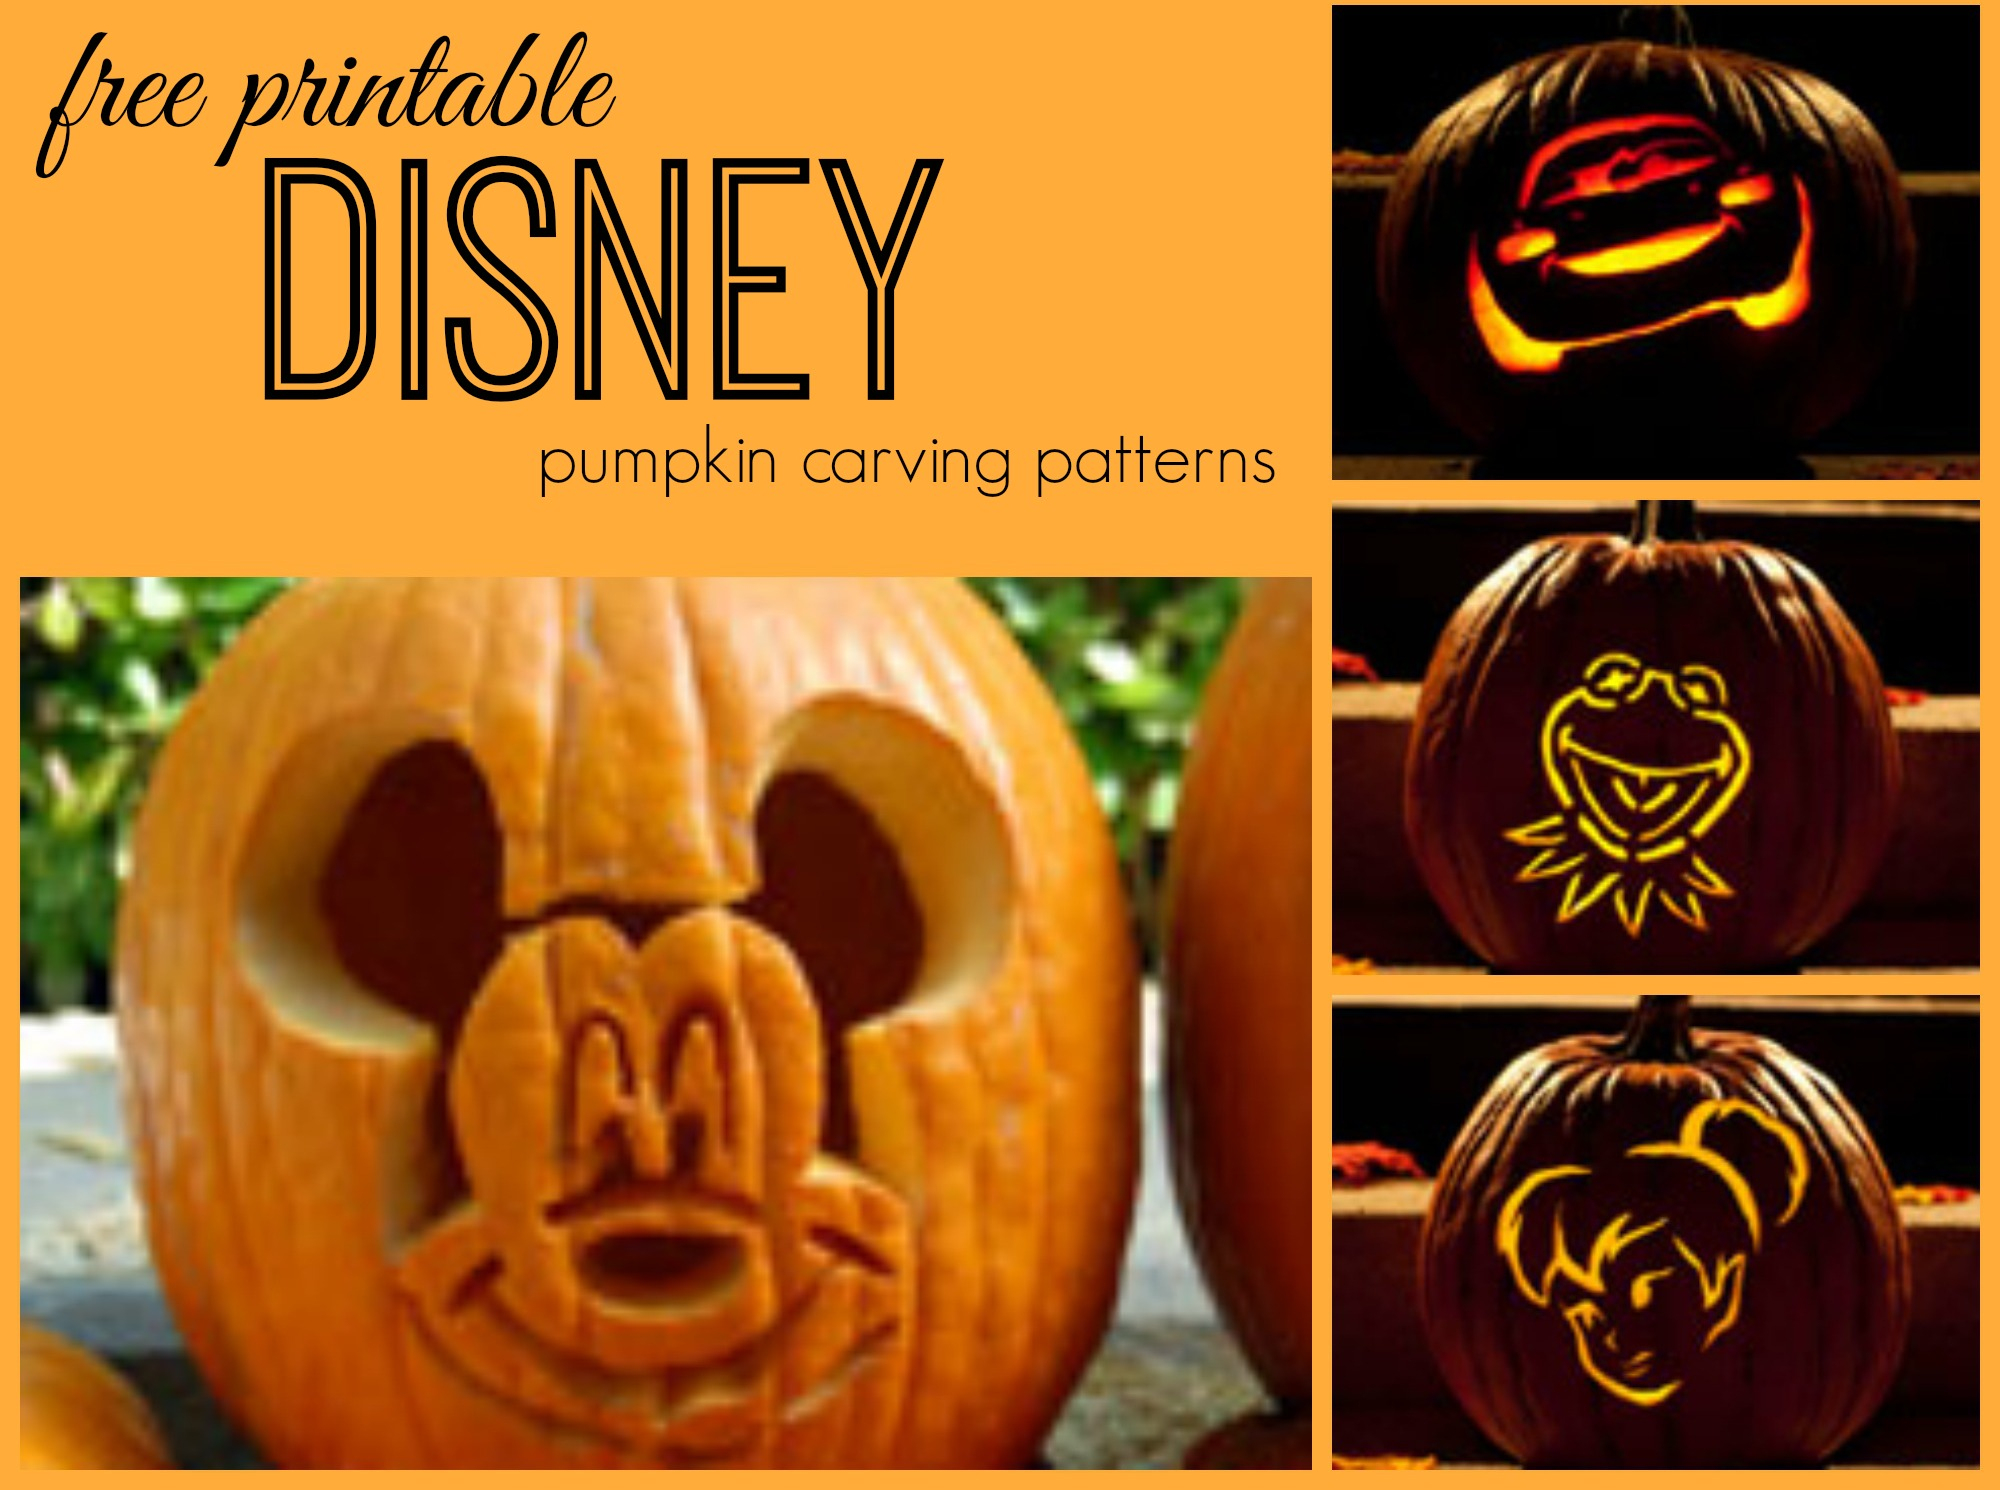 Disney Pumpkin Carving Patterns - Frugal Fanatic - Free Pumpkin Carving Patterns Disney Printable